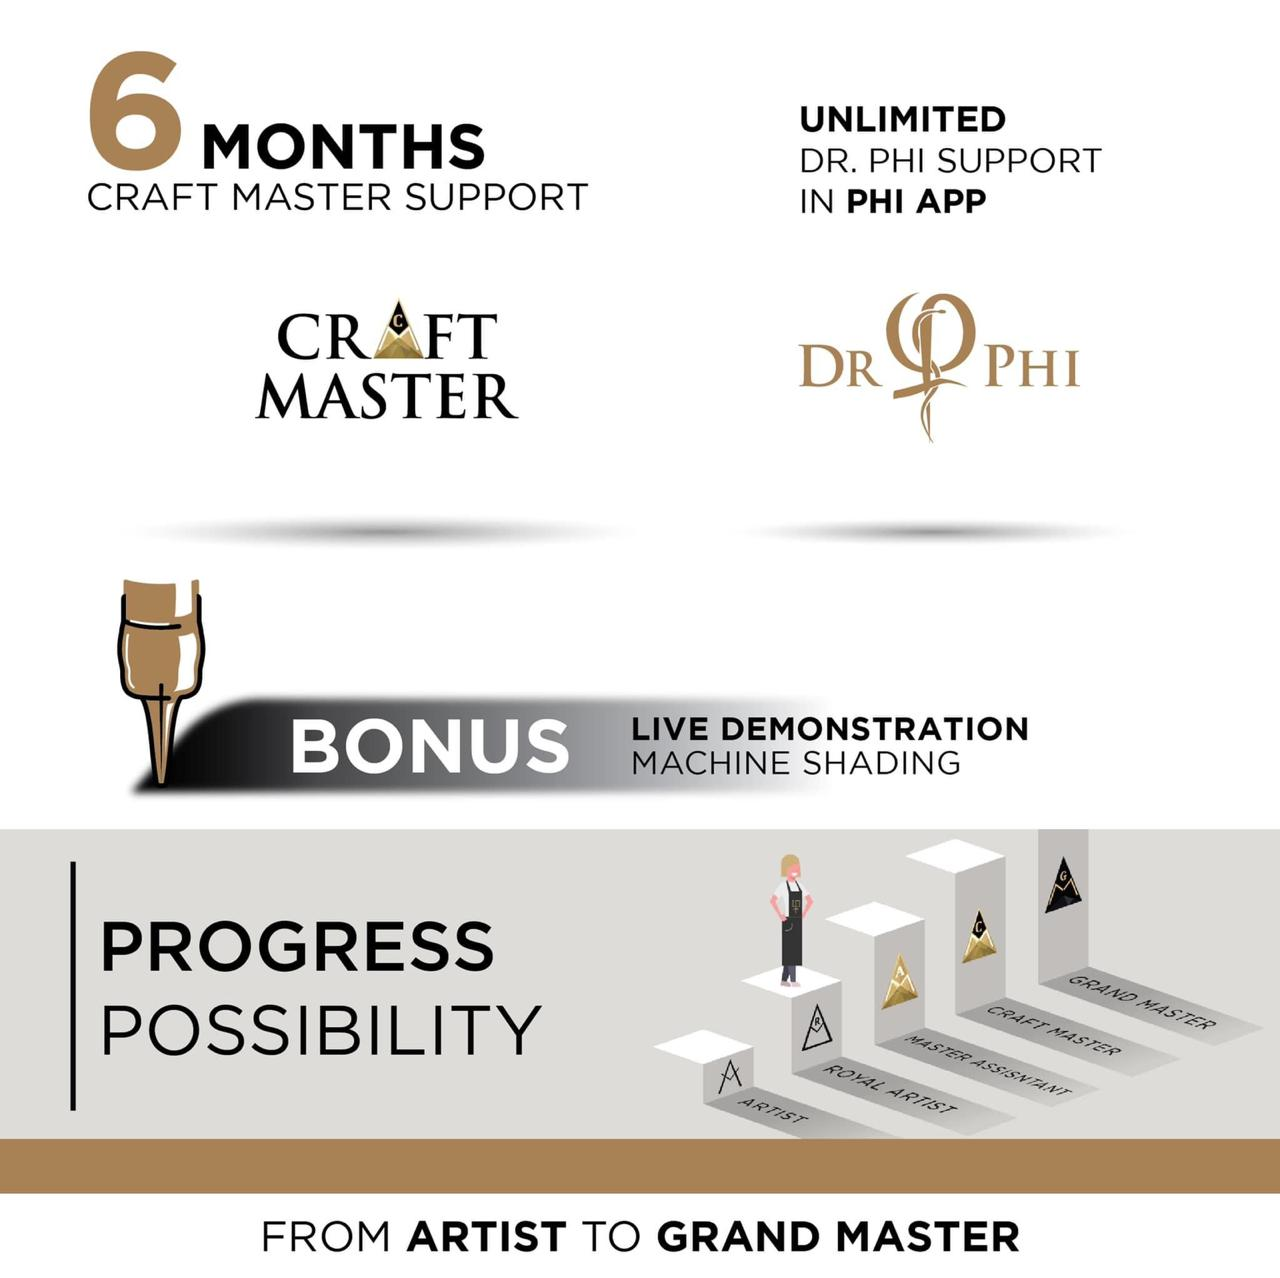 6 Months Craft Master Support